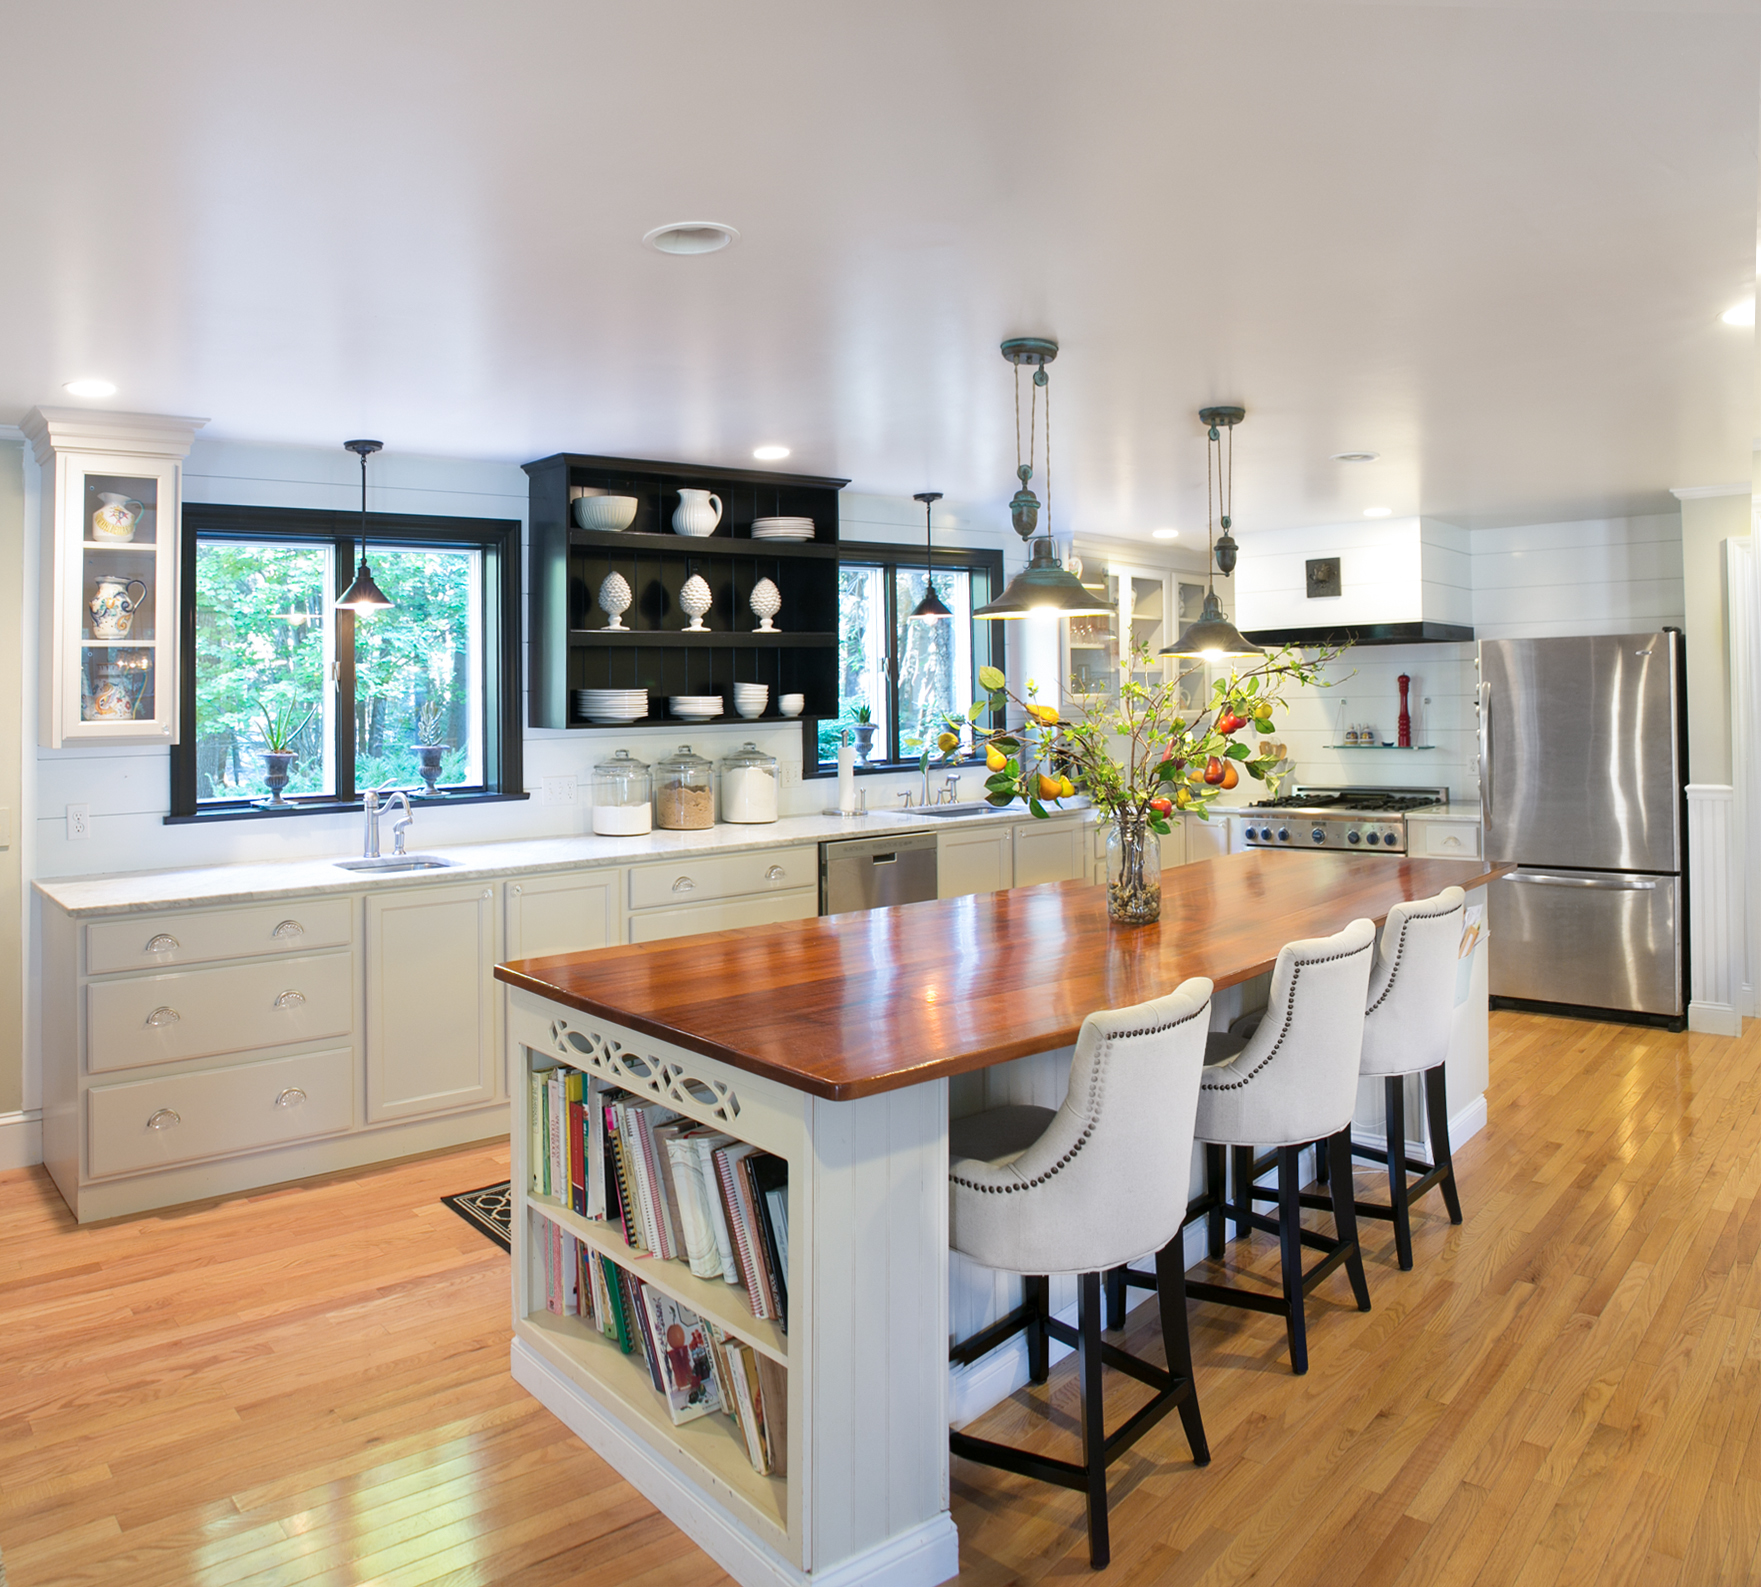 Kitchen With Living Room Design: Need Inspiration For A Kitchen Renovation? Look At These